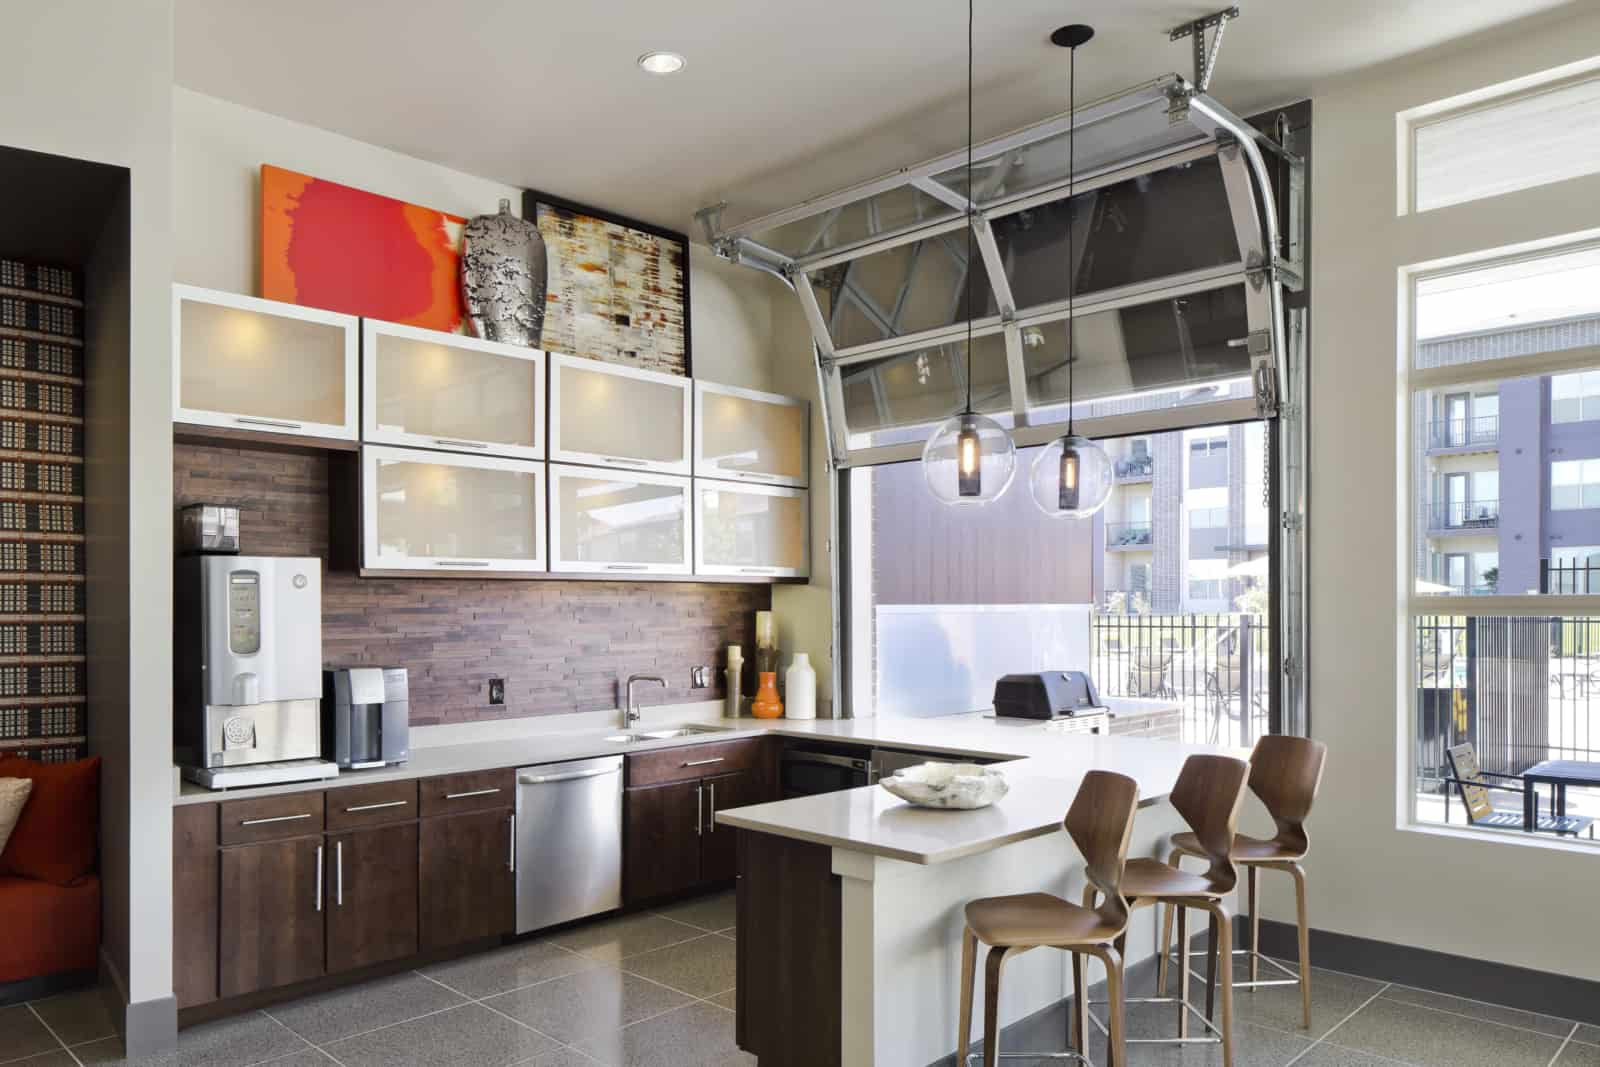 Interior of kitchen in the common area with view of the bbq grill through the window.